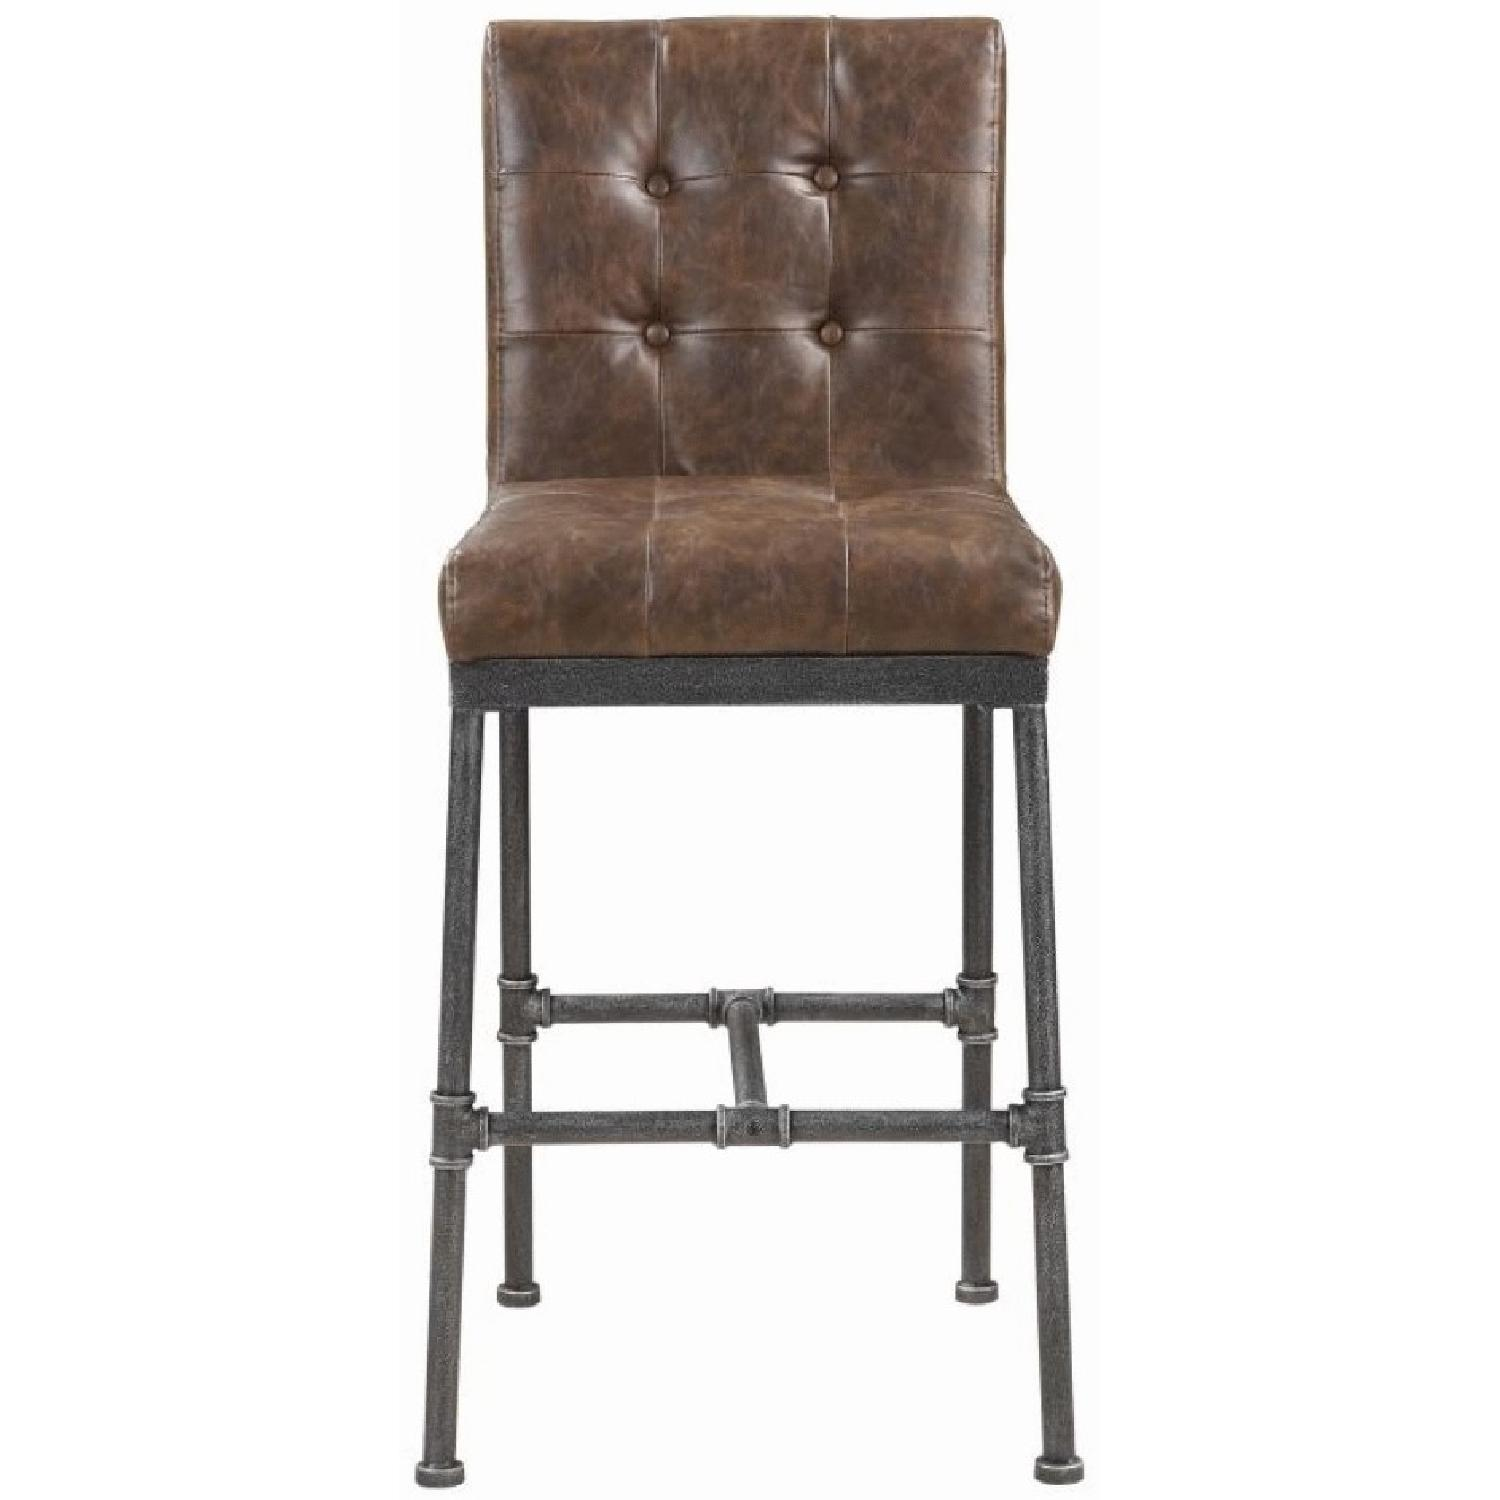 Bar Chair in Padded Brown Leatherette Upholstery - image-0